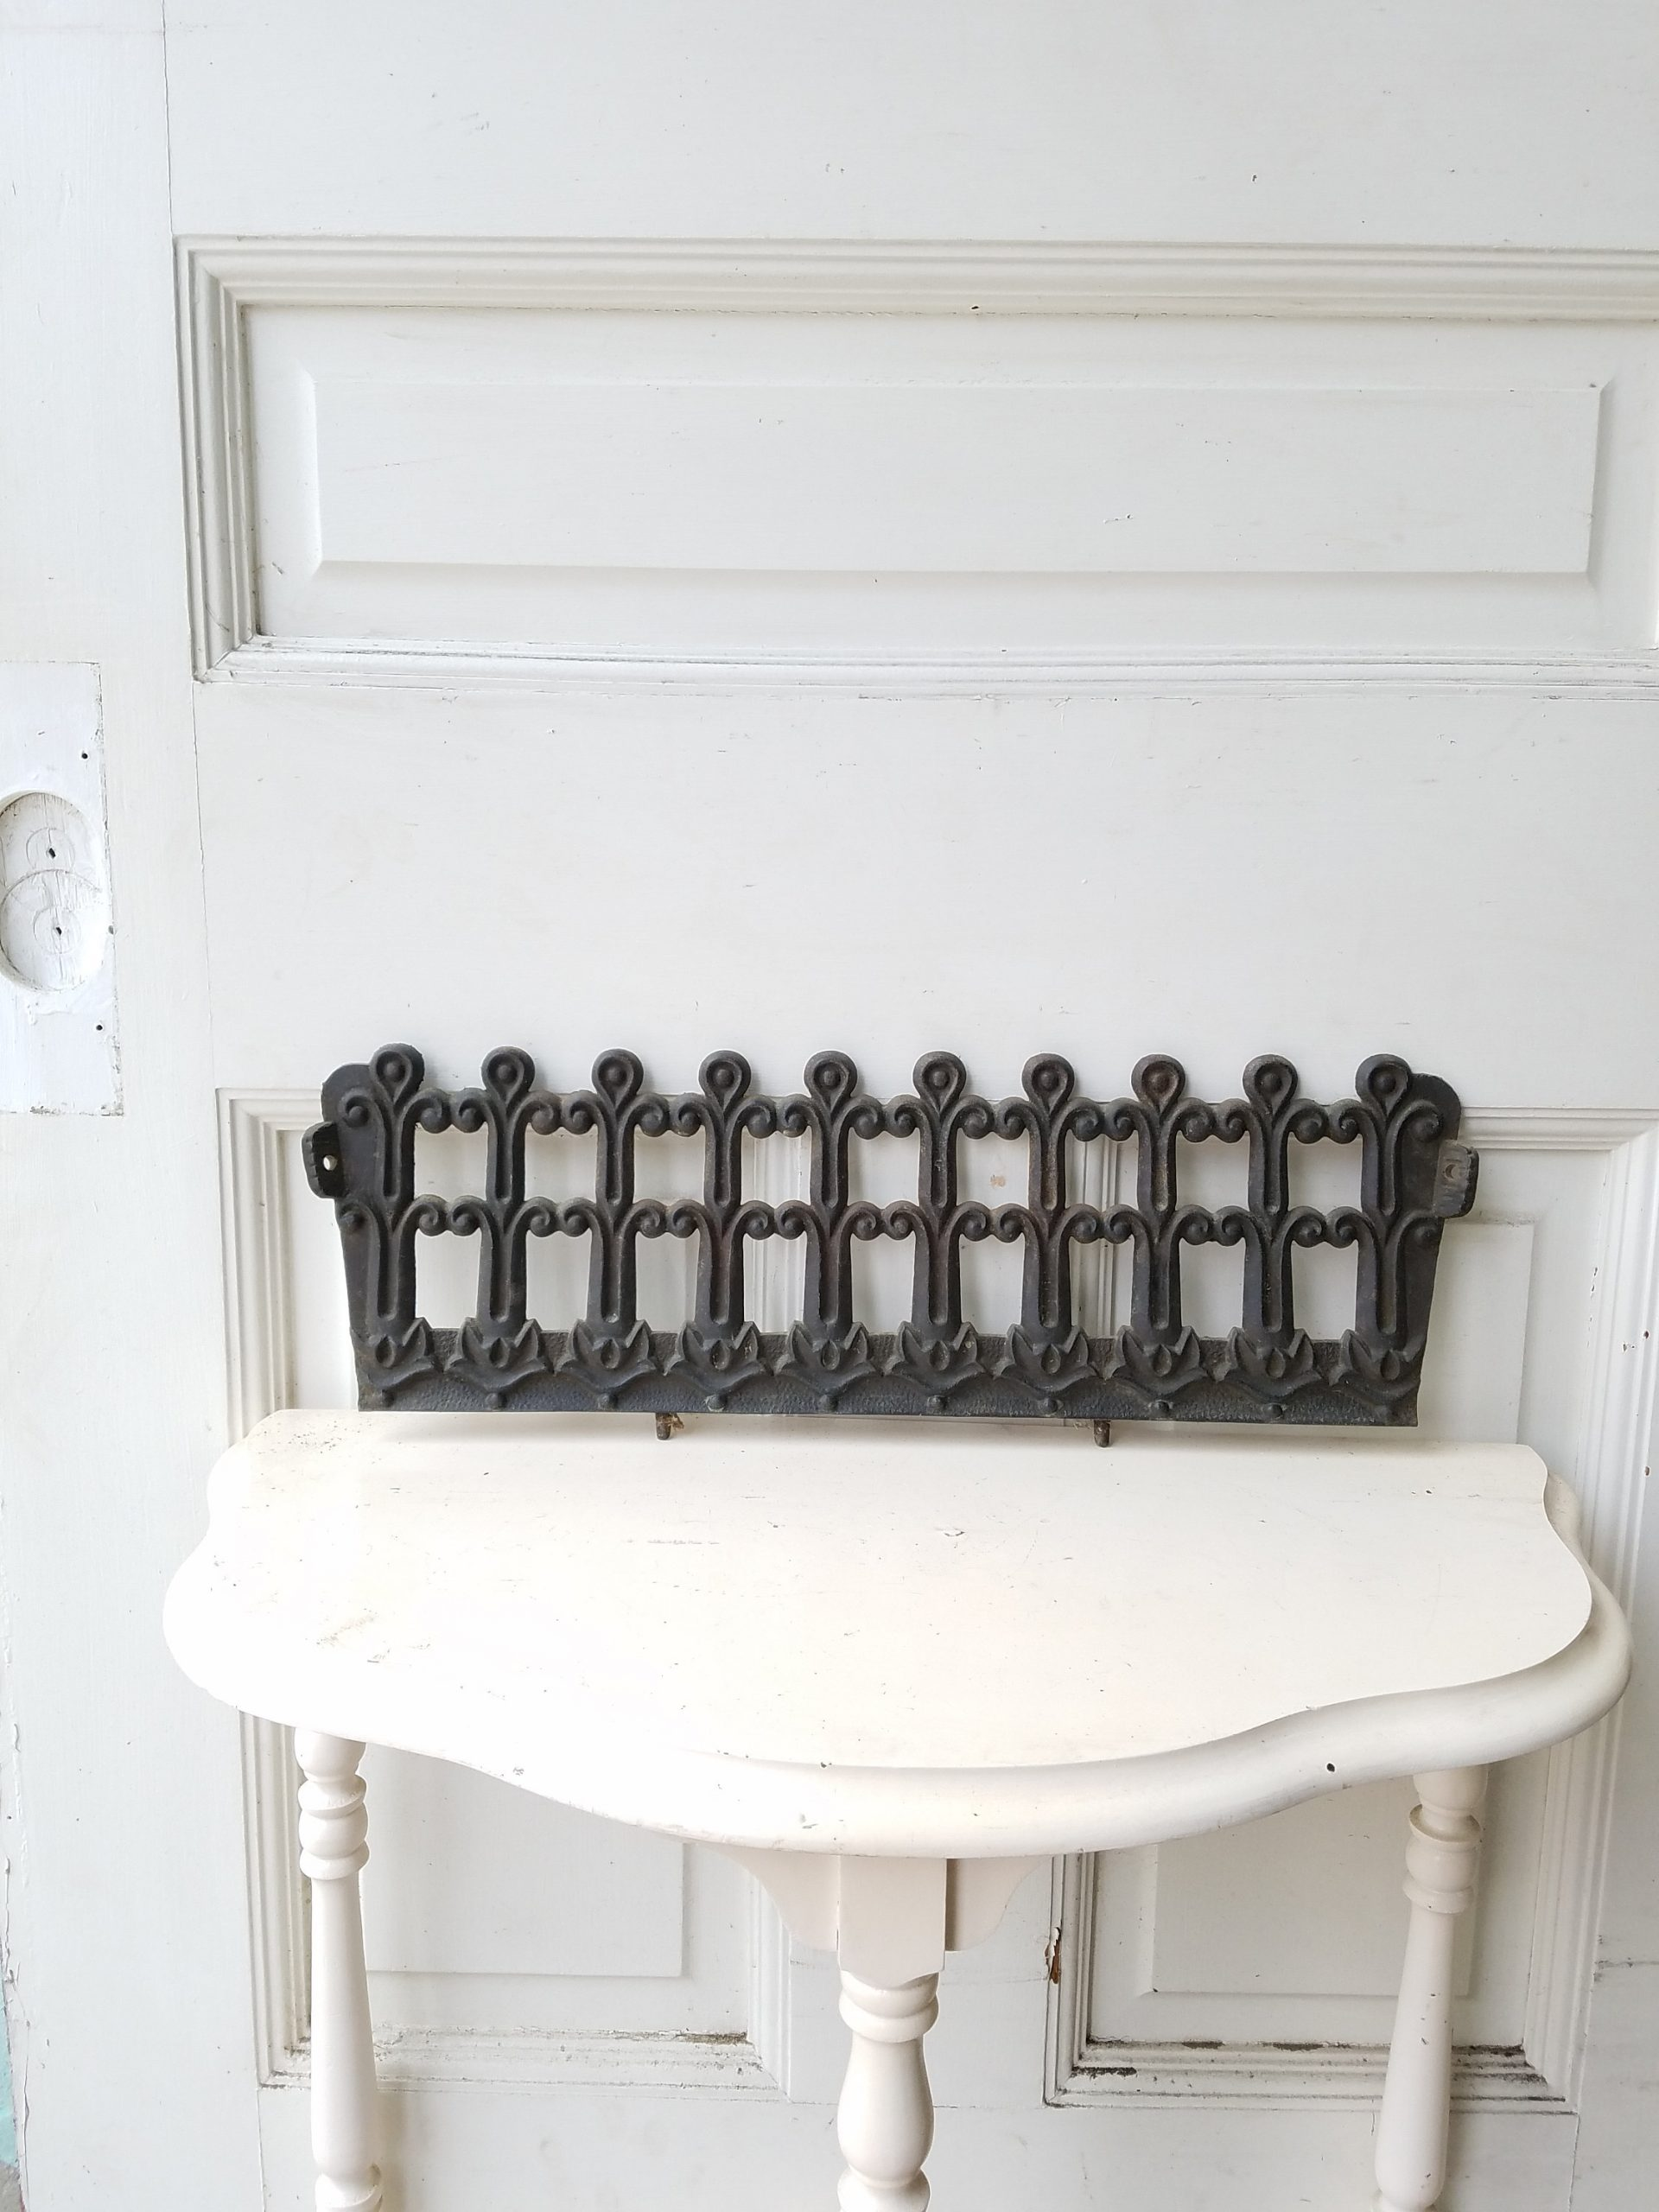 Fireplace Grate with Blower Elegant Fireplace Grate Iron Log Grate Metal Coal Grate Fireplace Front Fireplace Insert Antique Iron Grate Architecture Salvage Antique Log Holder